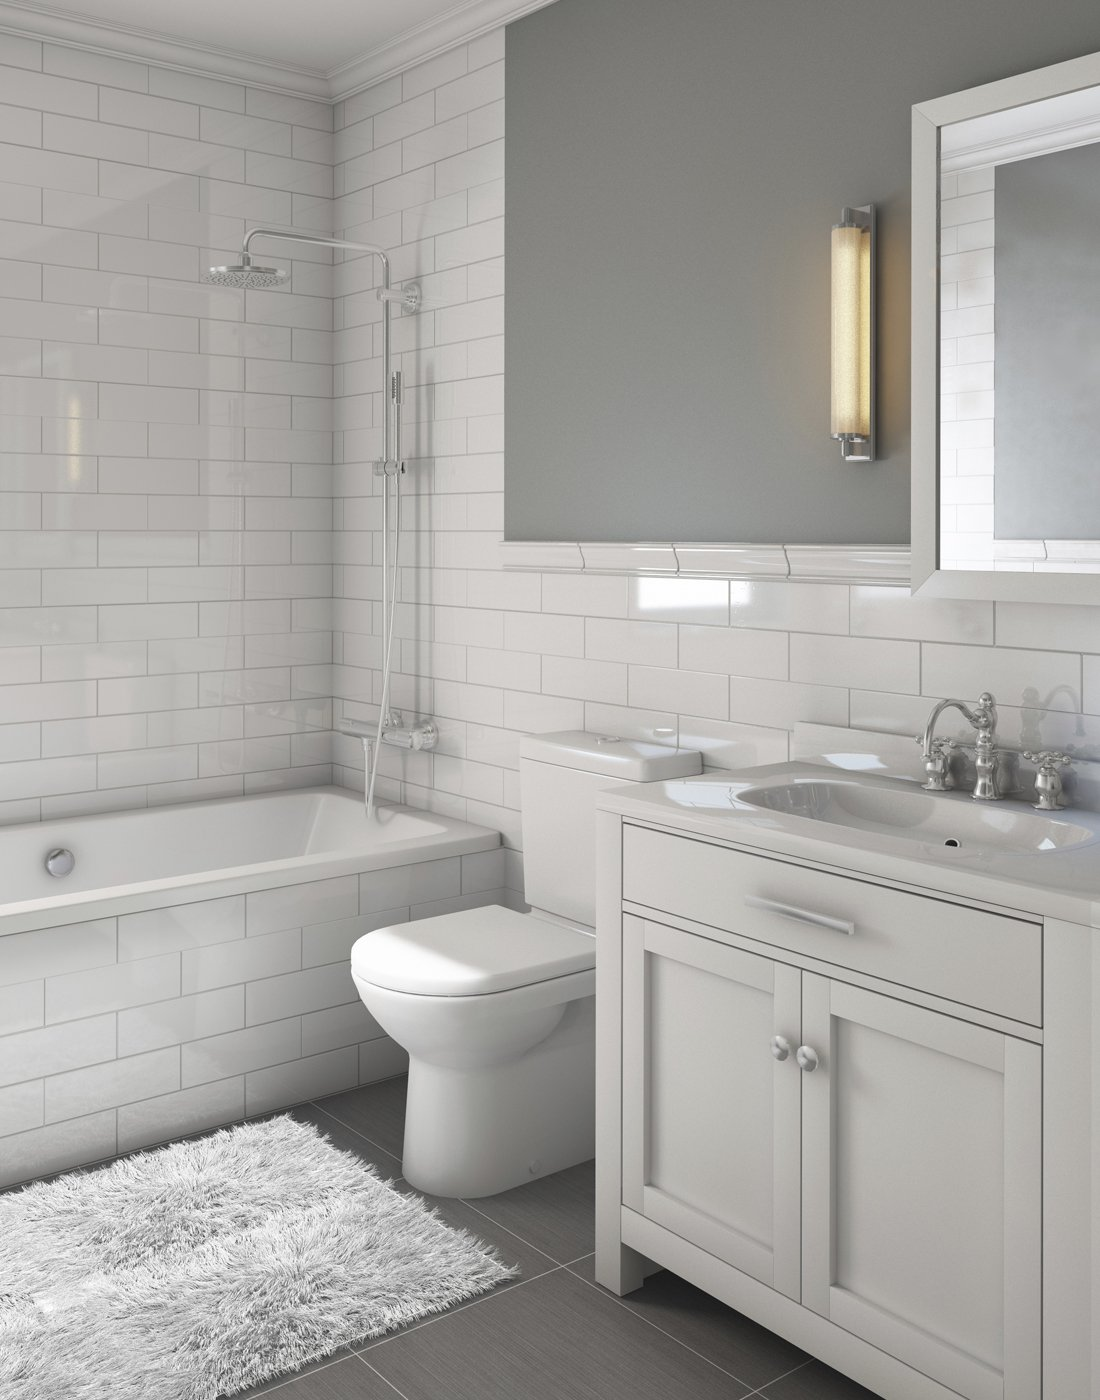 Newely remodeled bathroom